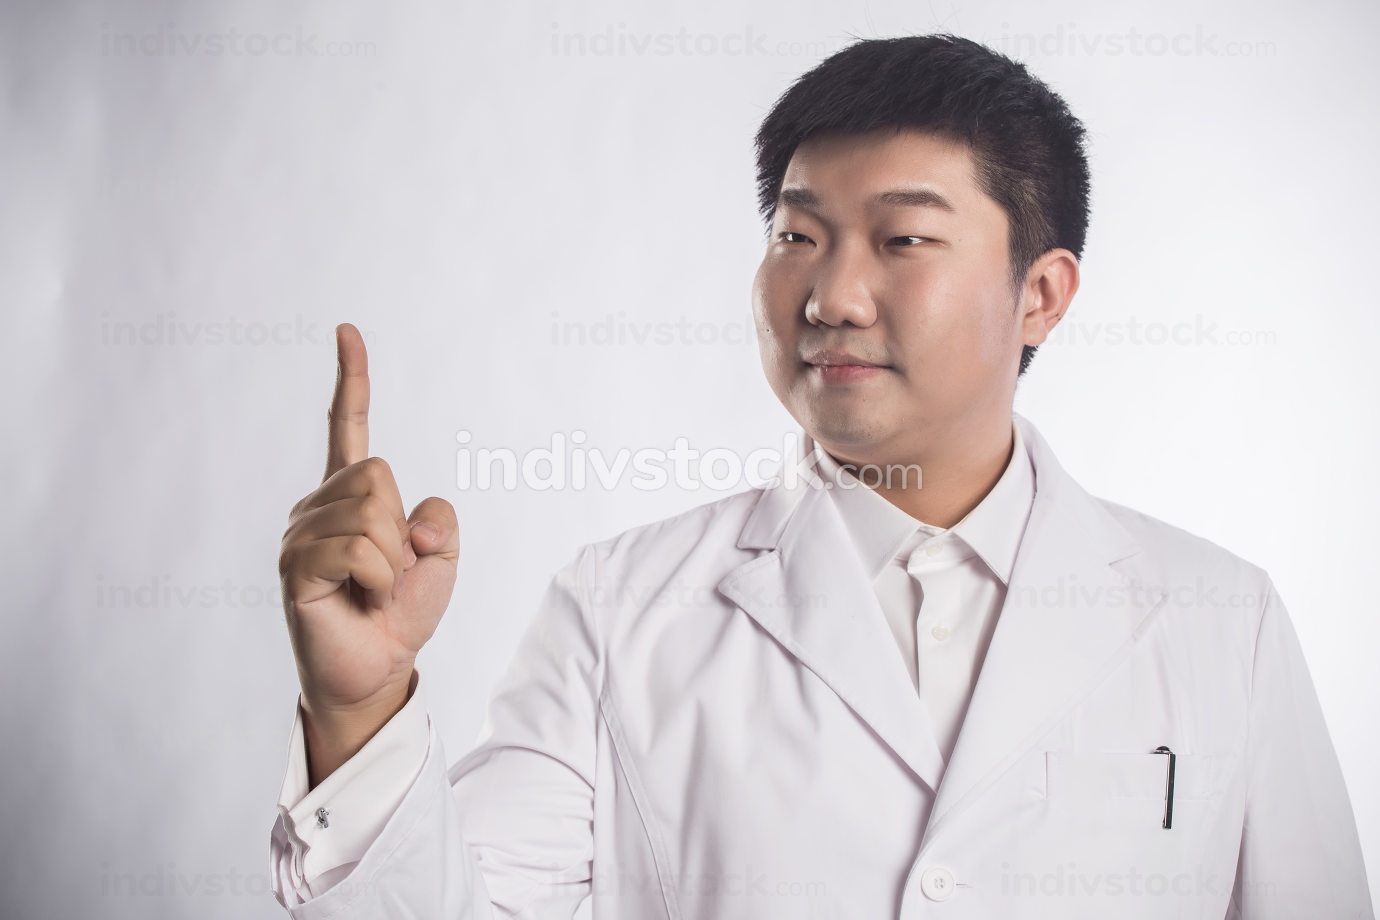 healthcare, profession, people and medicine concept - happy smiling male doctor in white coat pointing finger up